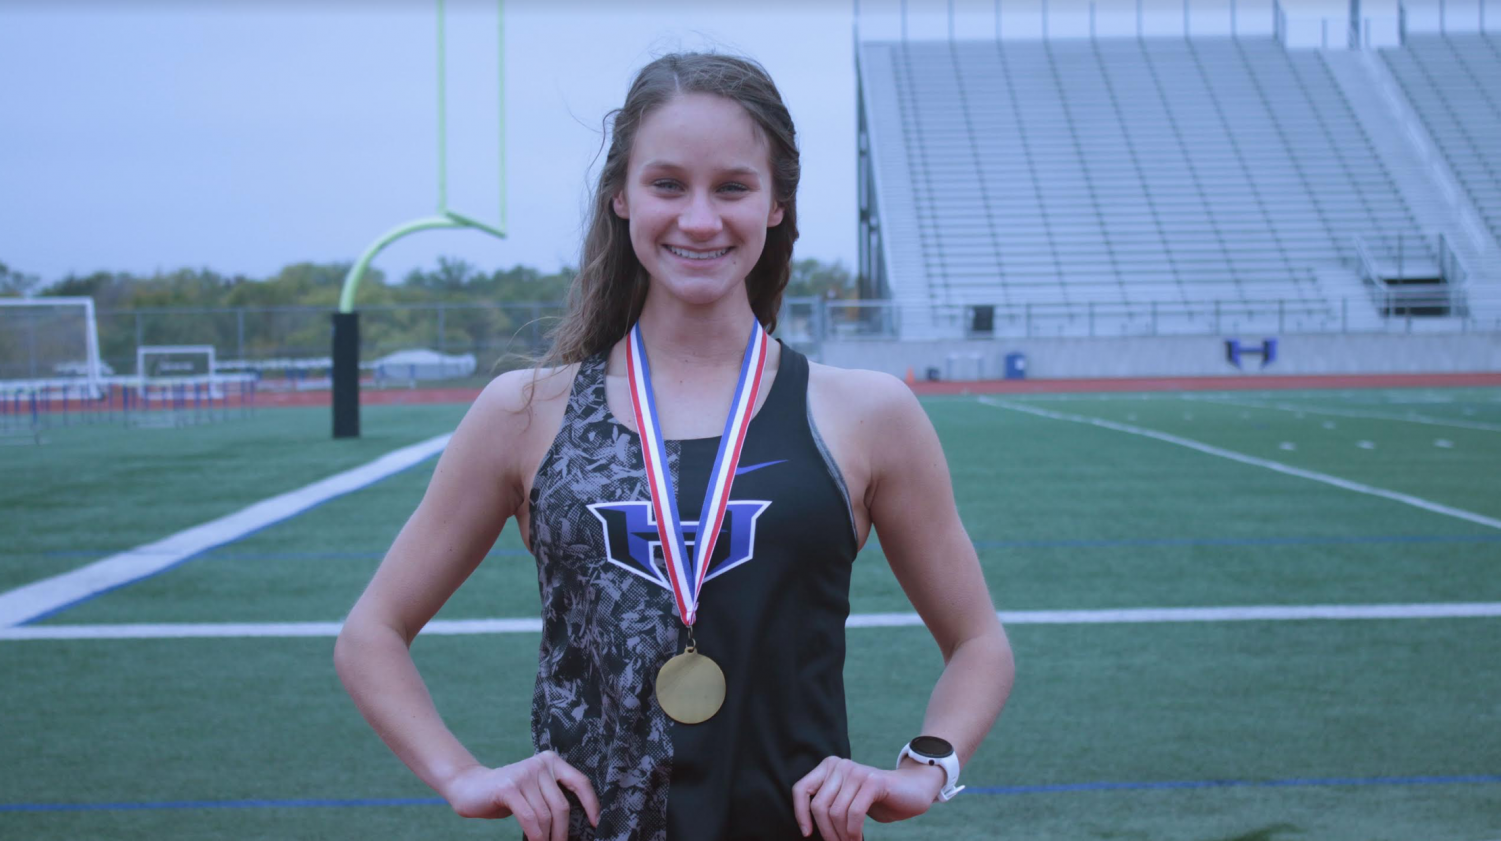 Junior Keaton Morrison poses on the track in her racing singlet with the medal she received at the district meet. Morrison will travel to Round Rock to compete at the state meet on Nov. 9 as an individual.